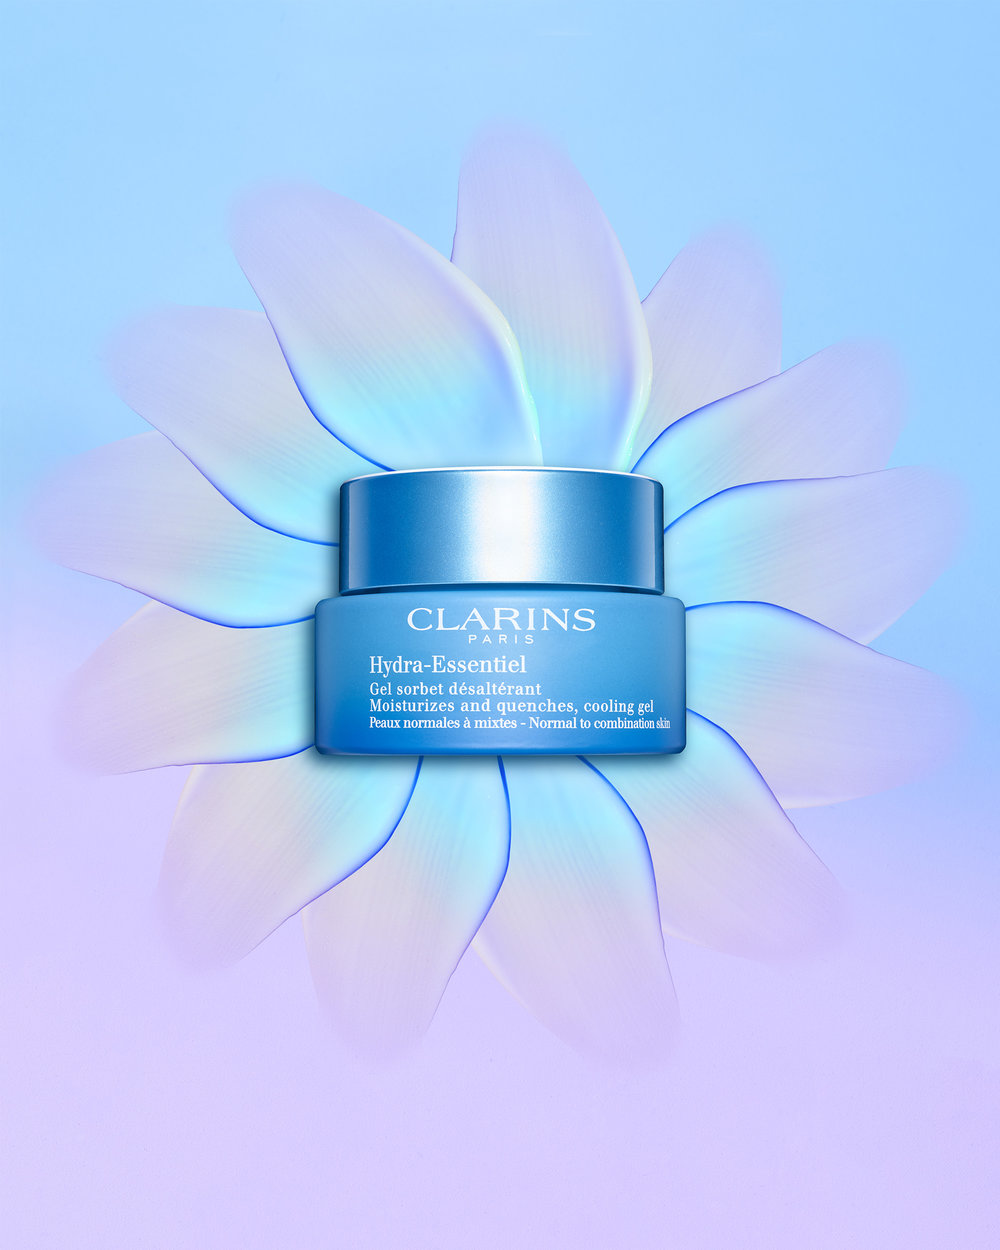 Clarins_Keith_Greenbaum_20181221.jpg